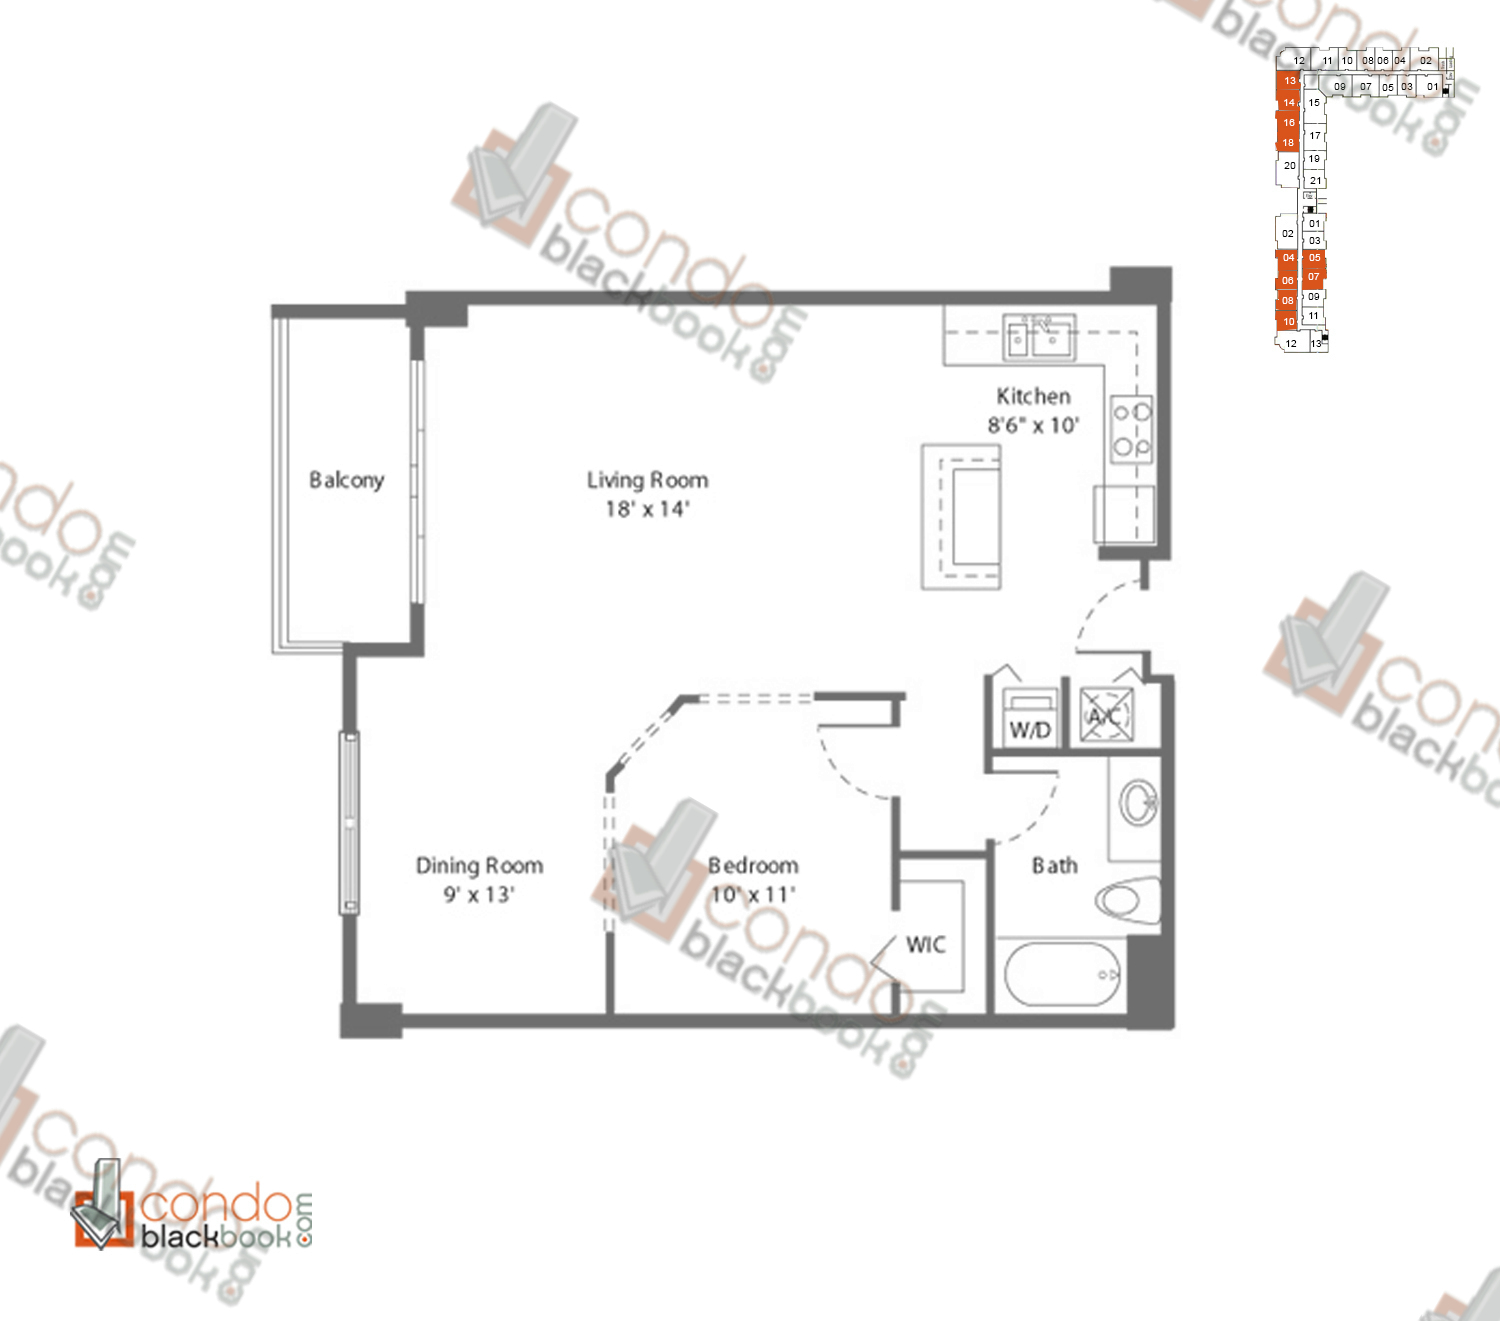 Floor plan for Cite Edgewater Miami, model F2_LOFT, line 04, 05, 06, 07, 08, 10, 1/1 bedrooms, 794 sq ft